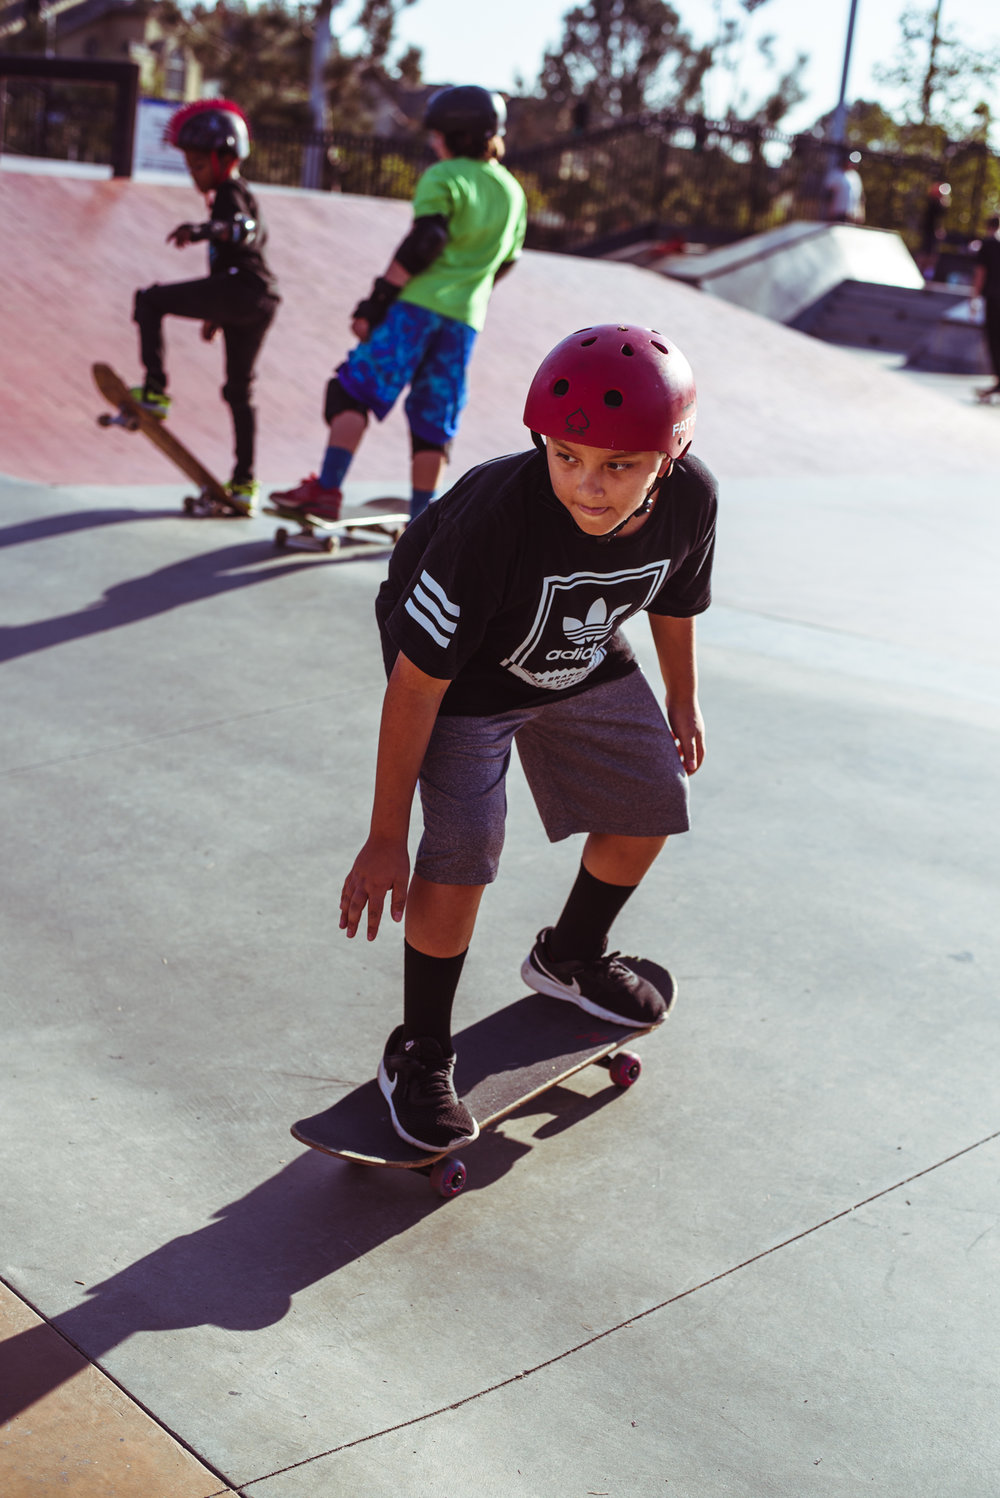 Skateboard Birthday Party-12.jpg